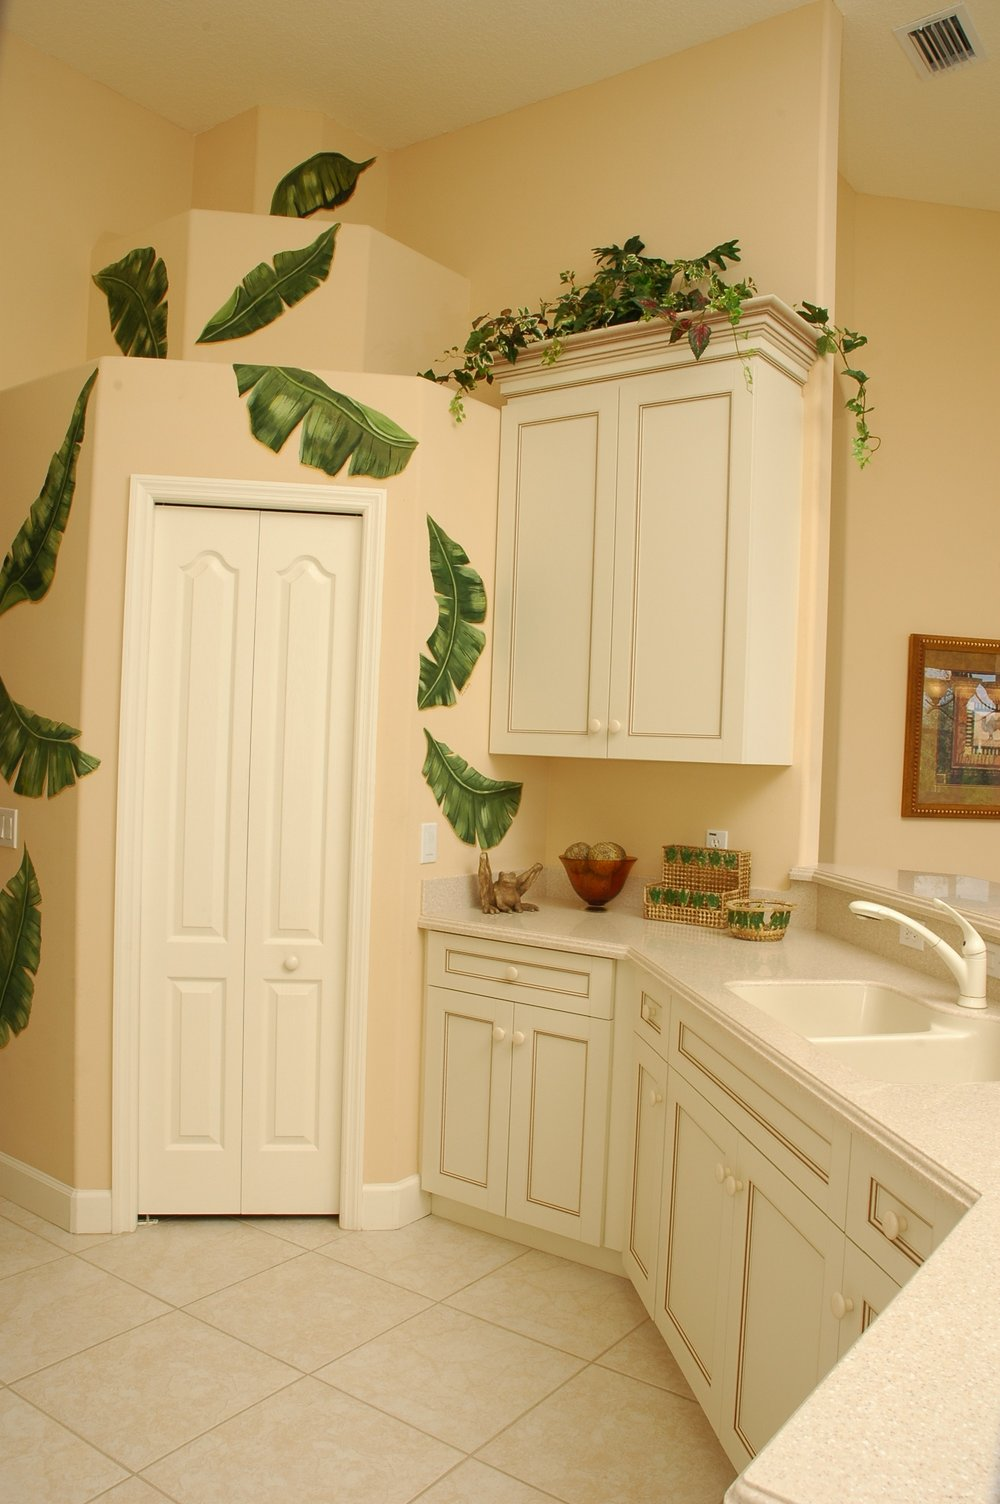 NOTI KITCHEN & BATH68.jpg